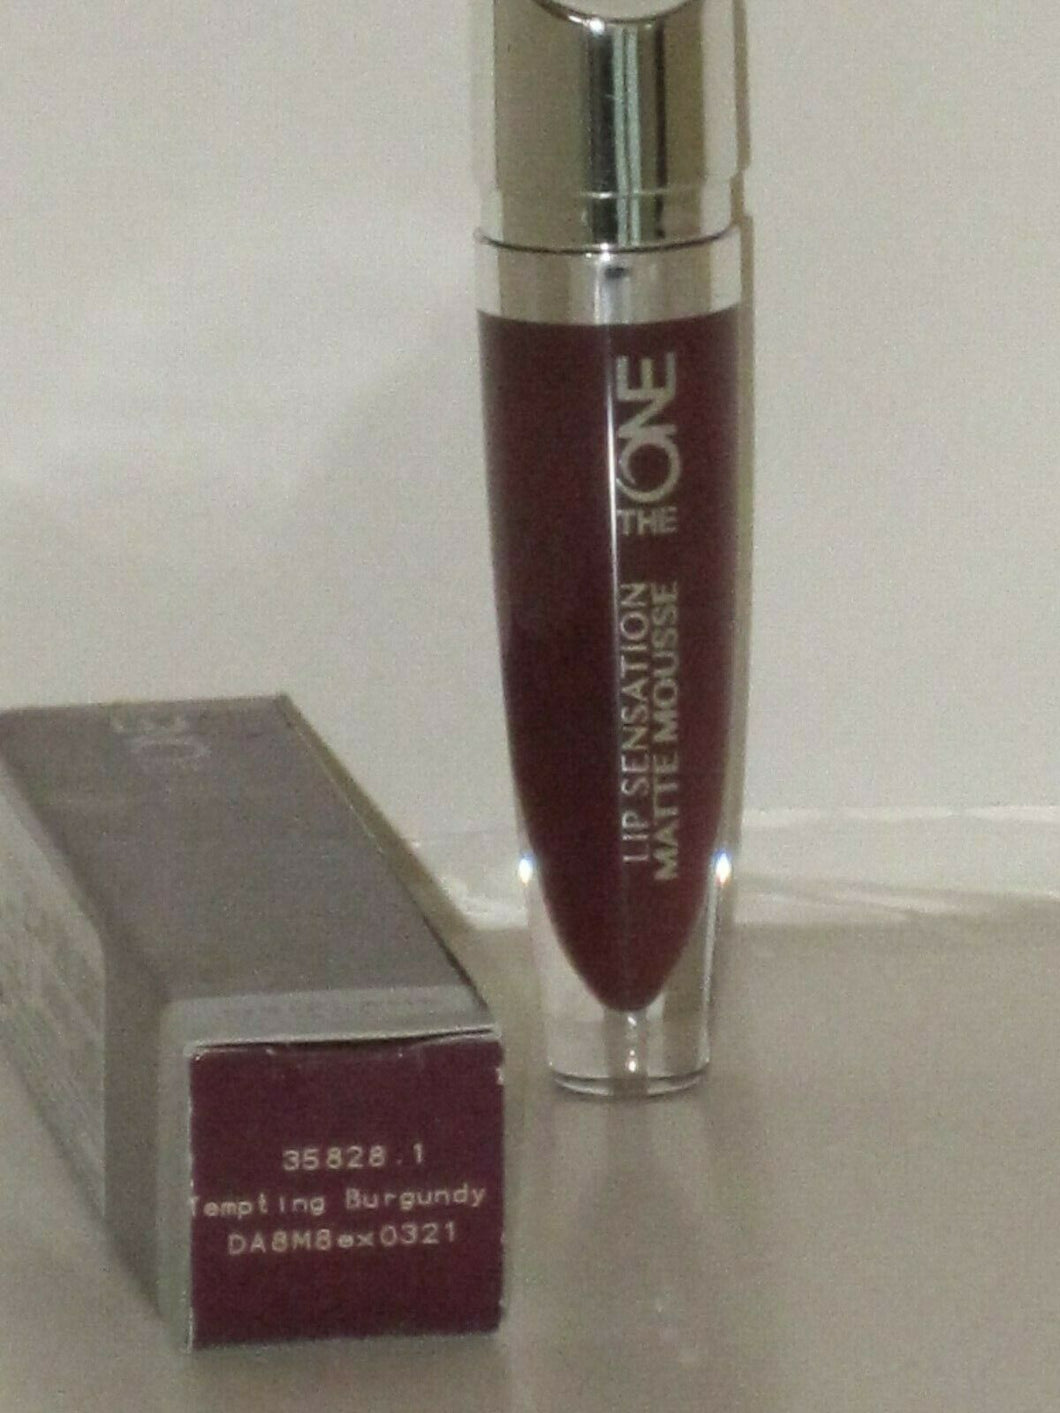 ORIFLAME SWEDEN THE ONE LIP SENSATION MATTE MOUSSE LIP#TEMPTING BURGUNDY 5ml NEW